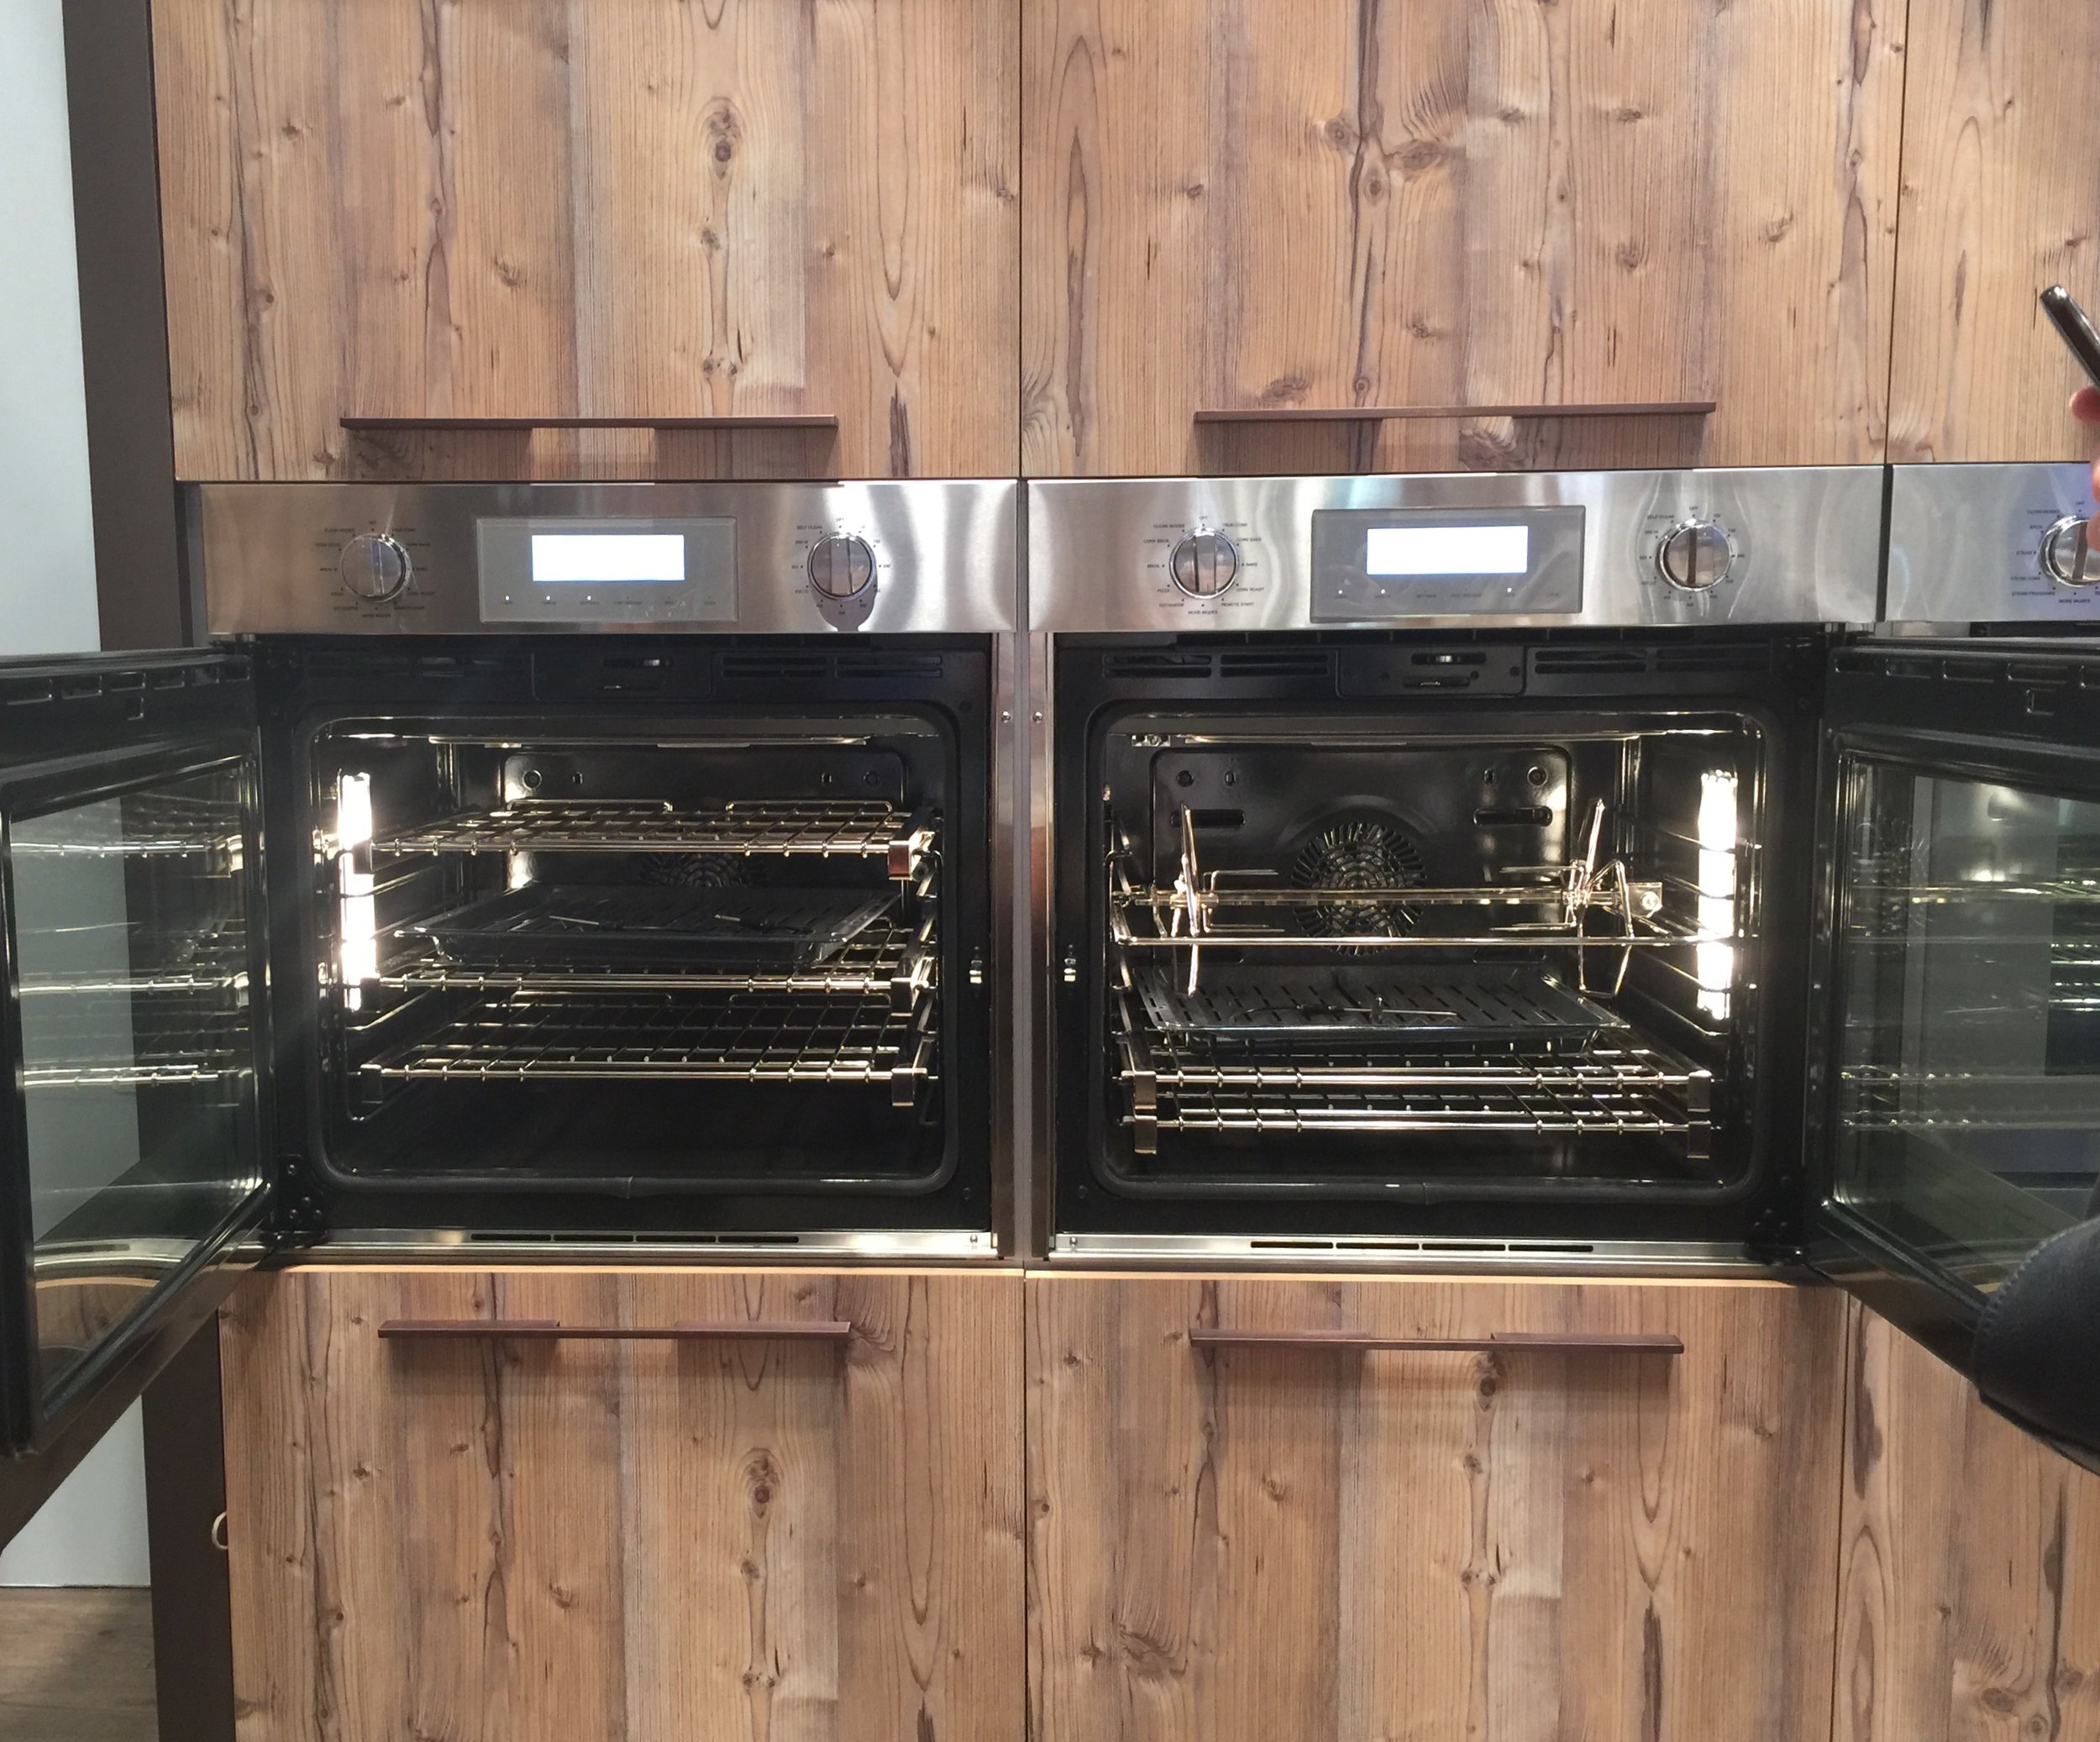 Side door opening ovens from Thermador #oven #thermador